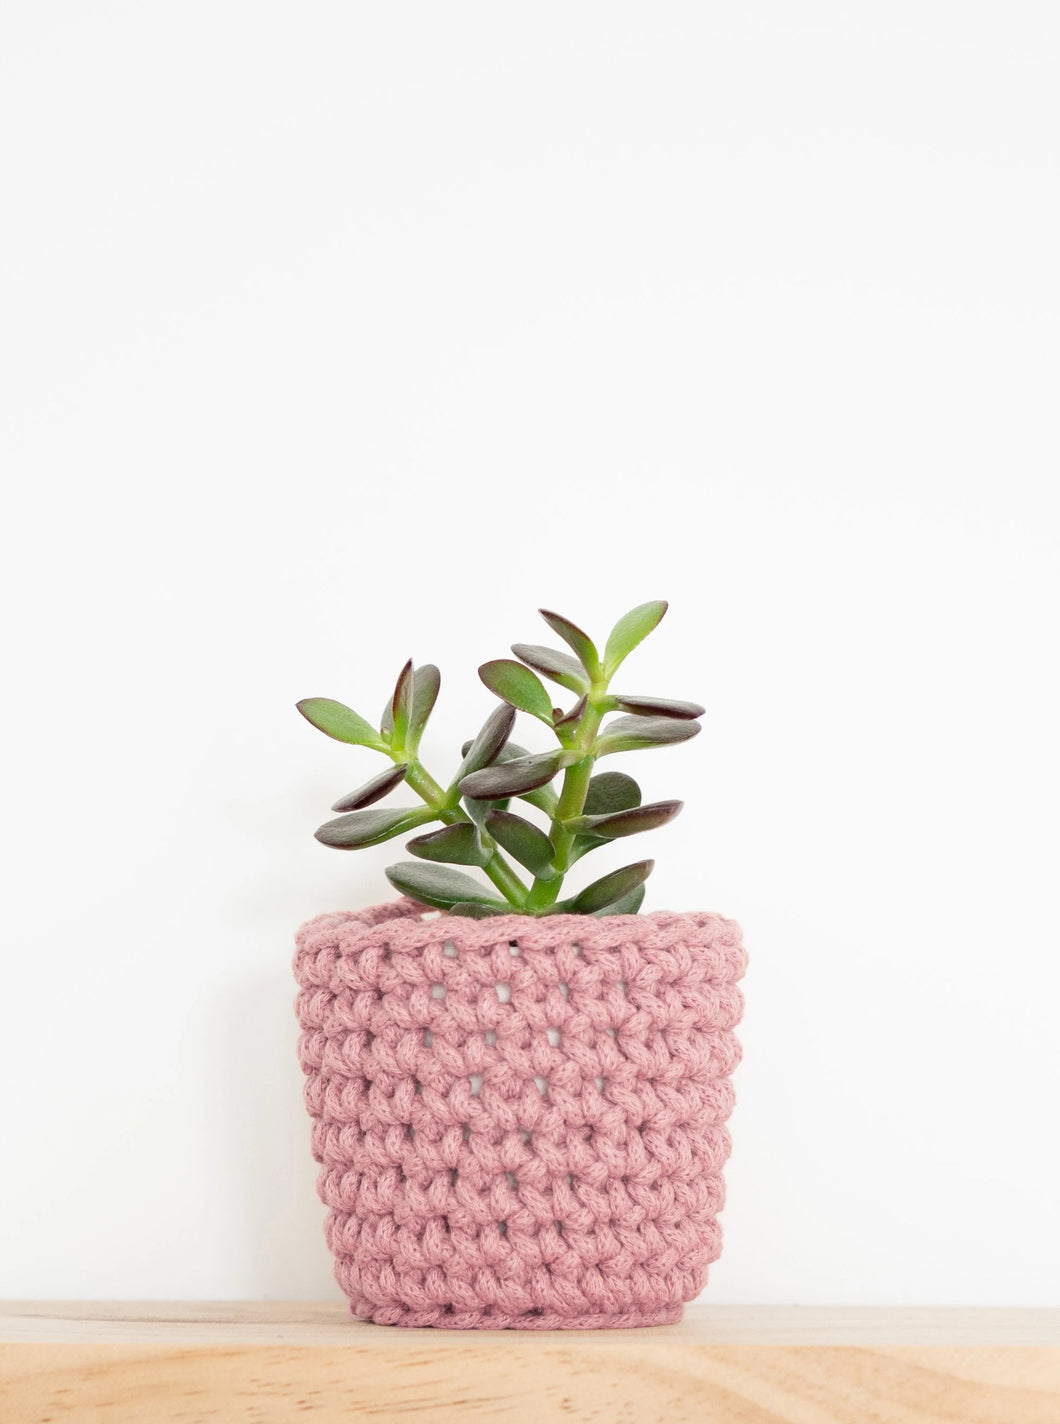 Mini eco plant pot - blush - Knttd coloured handmade plant pot cover made from recycled cotton yarn with watertight inner pot made from recycled plastic